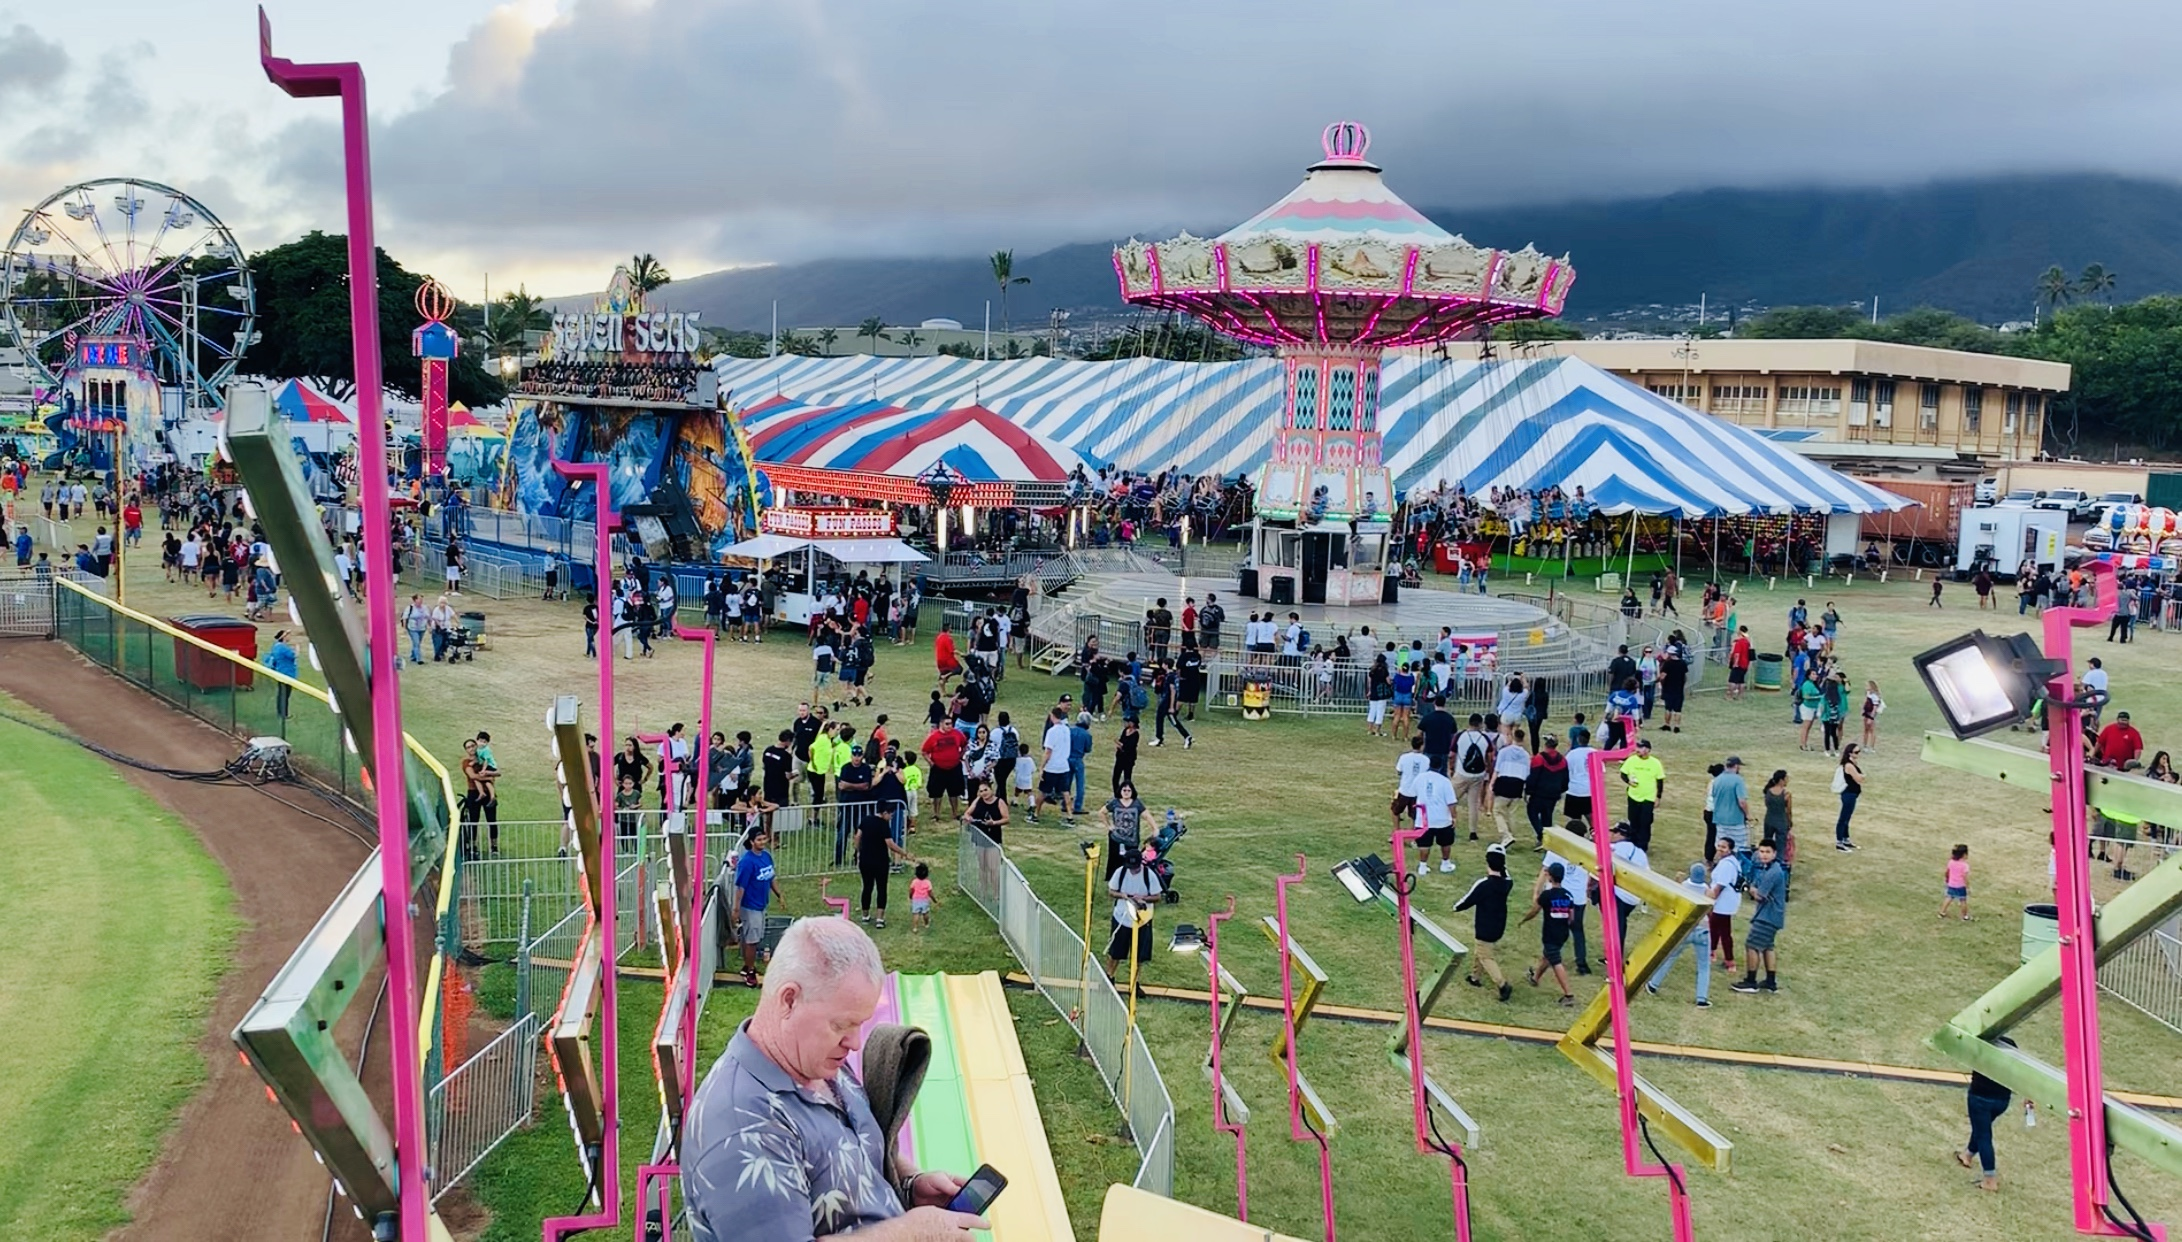 Maui Fair Opening Day Attendance Ahead of Last Year, More Family Fun This Weekend